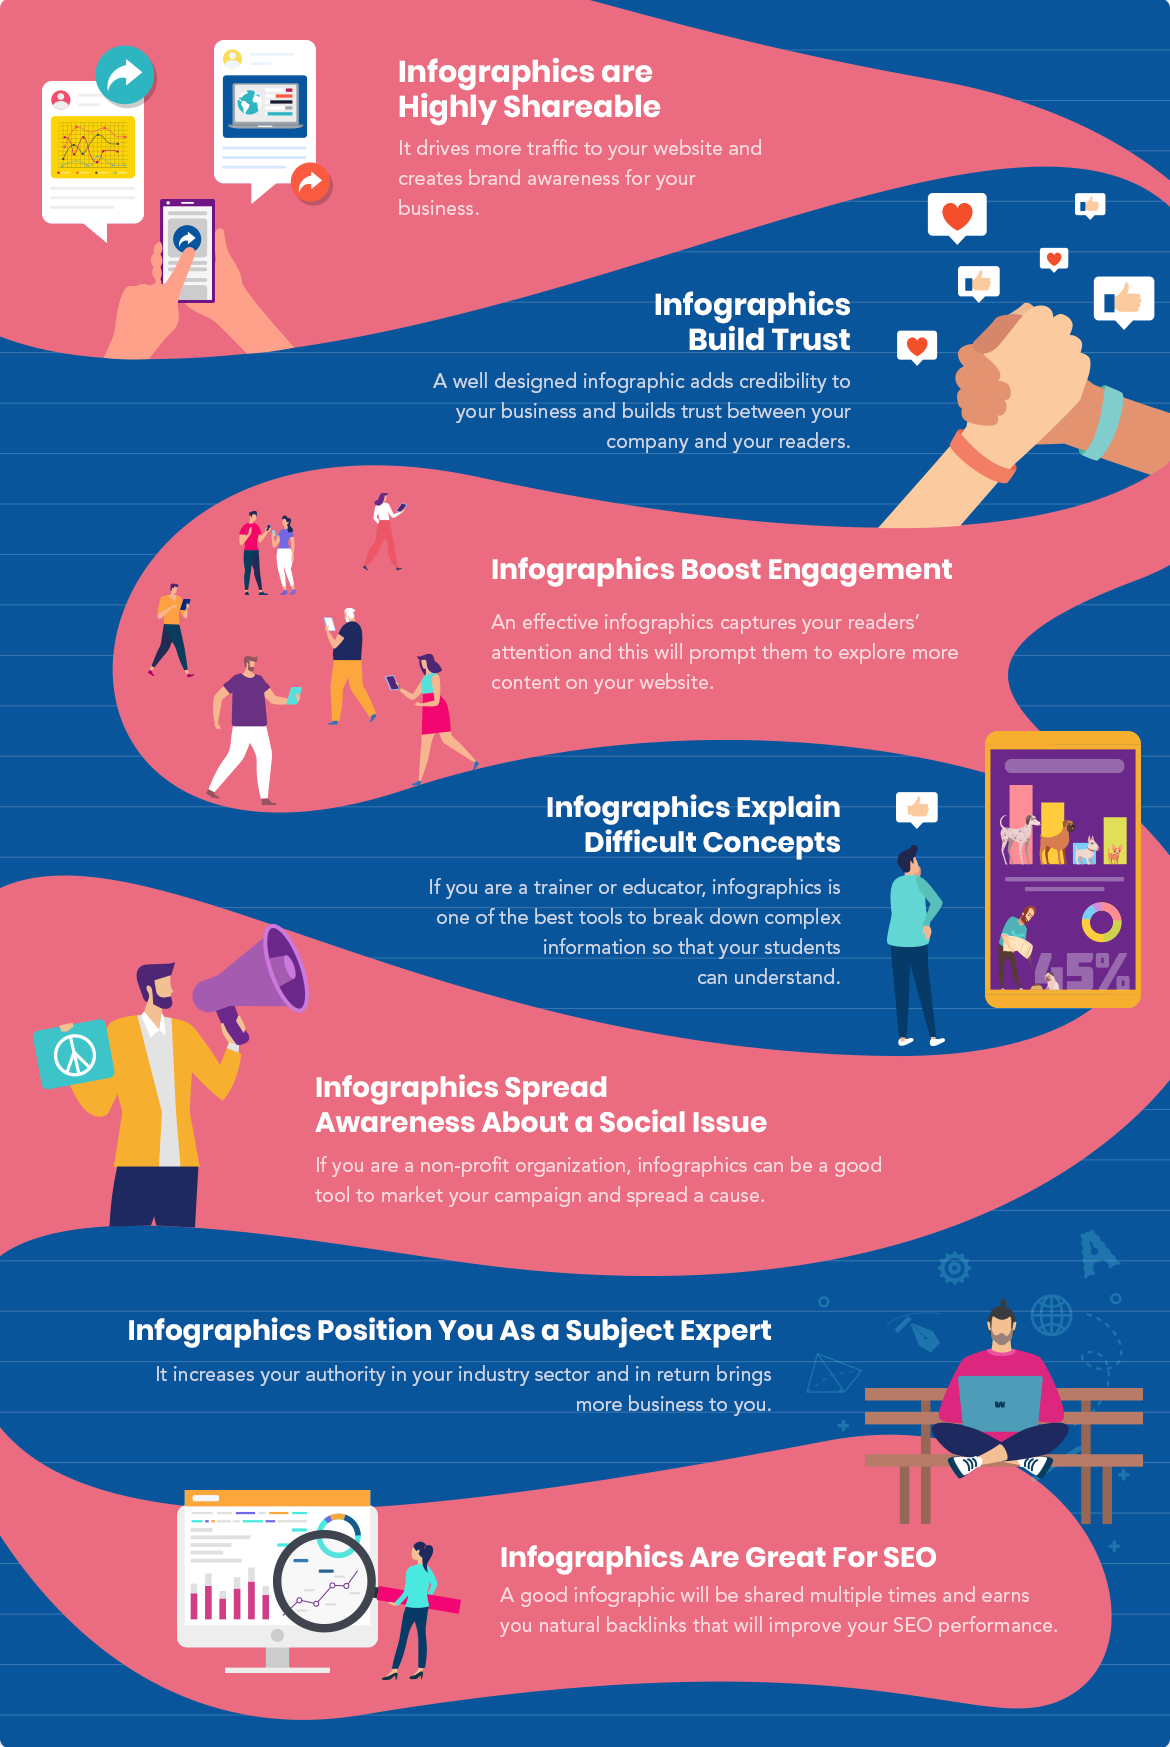 why should you use infographics